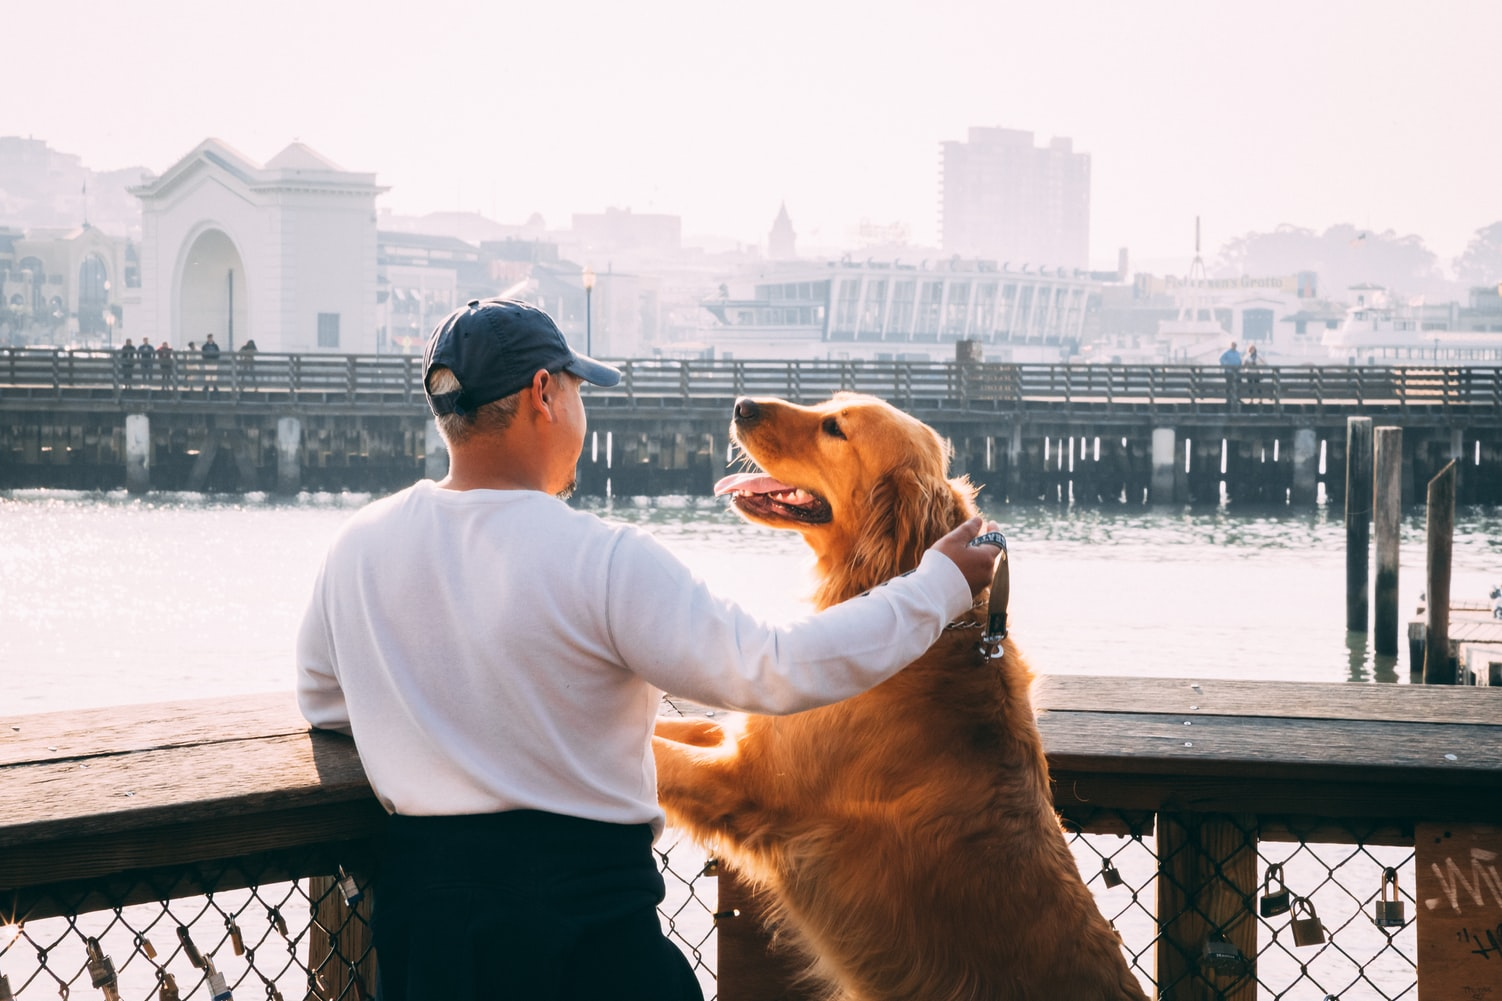 Man standing with dog looking out at water